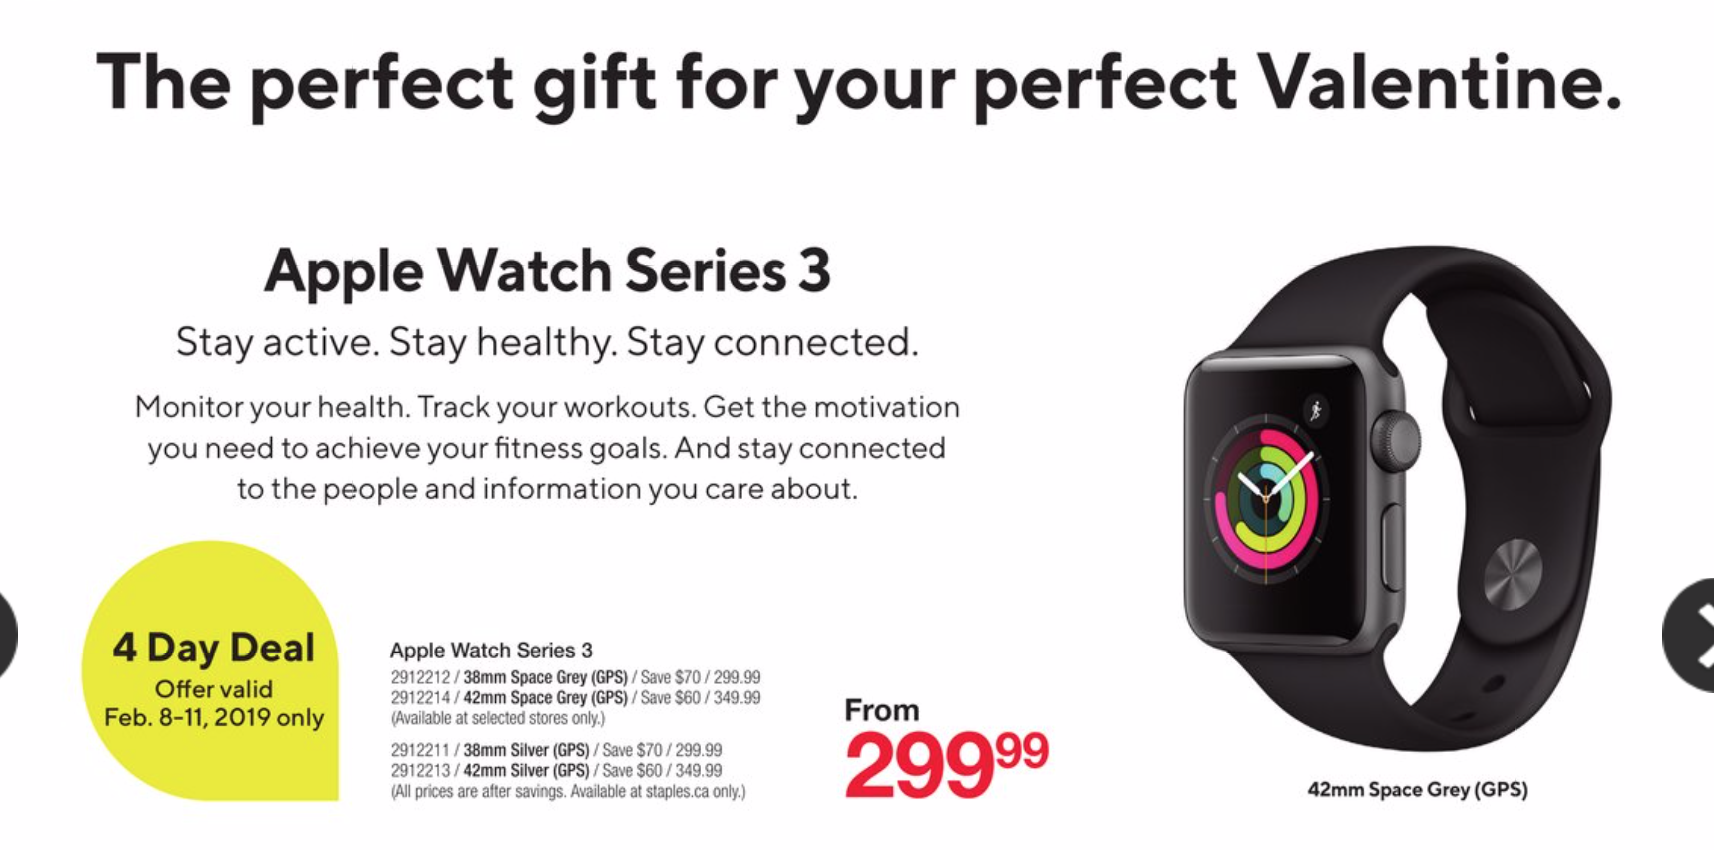 bc39c7642 This is one of the better Apple Watch deals I ve come across lately